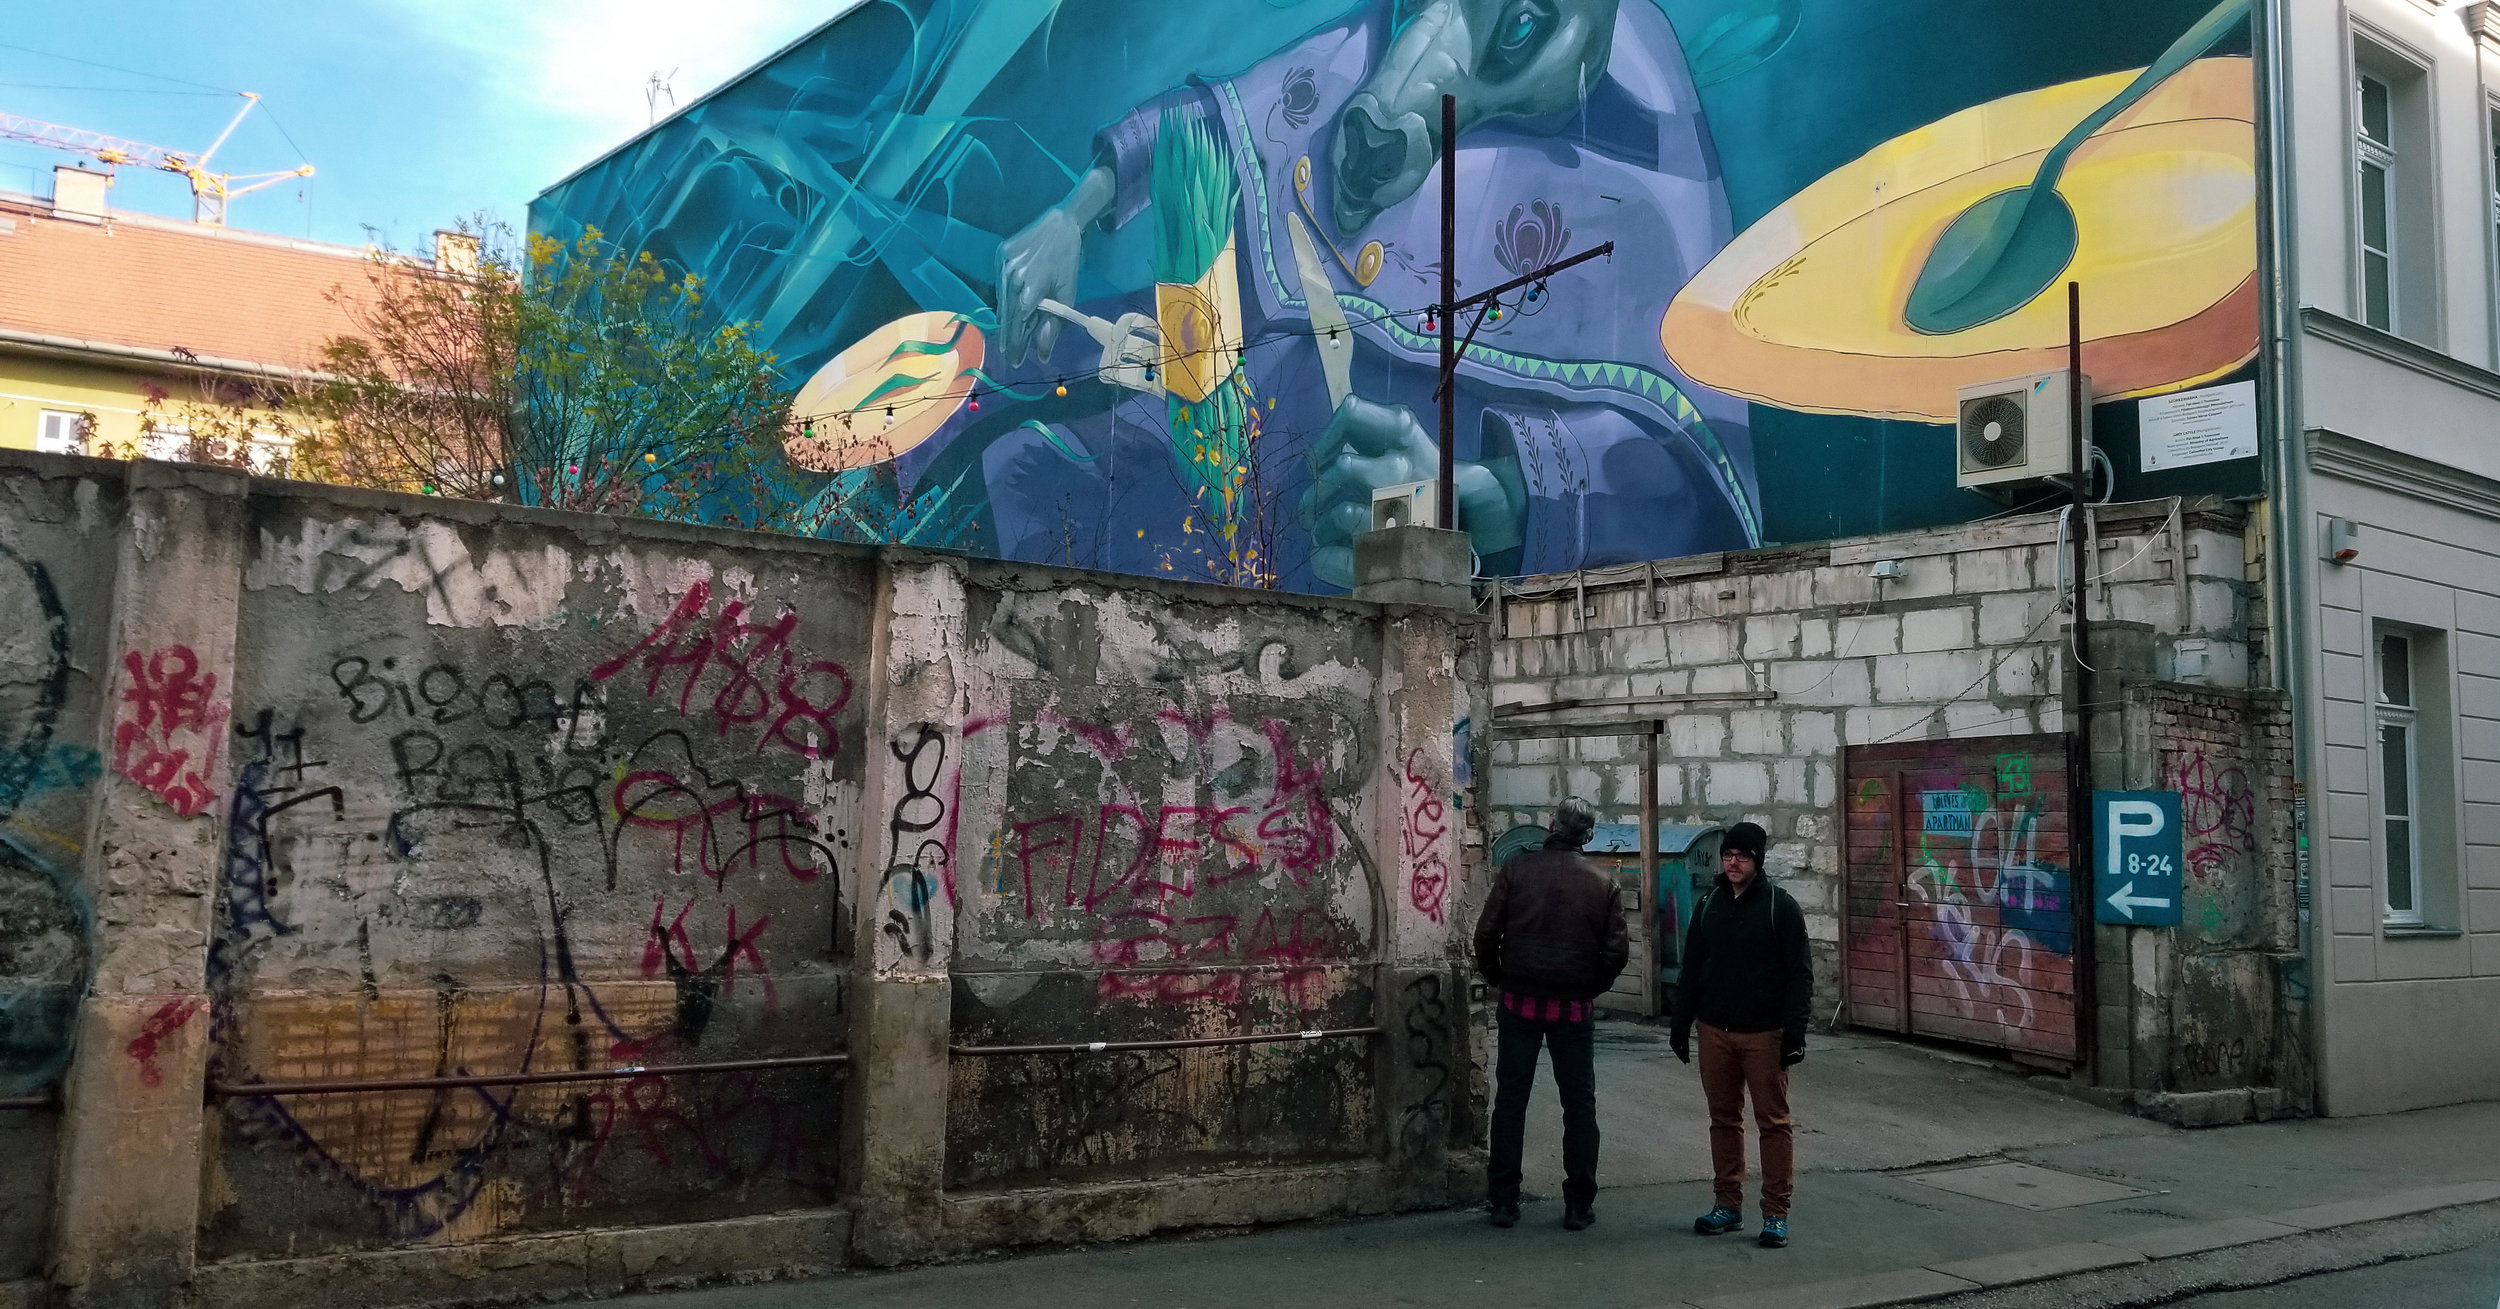 This mural overlooks the garden at Mika Tivadar, a bar in Budapest's Jewish District, and represents Hungary's tradition of food and drink. Artist: Mika Tivadar ; Kazinczy u. 47